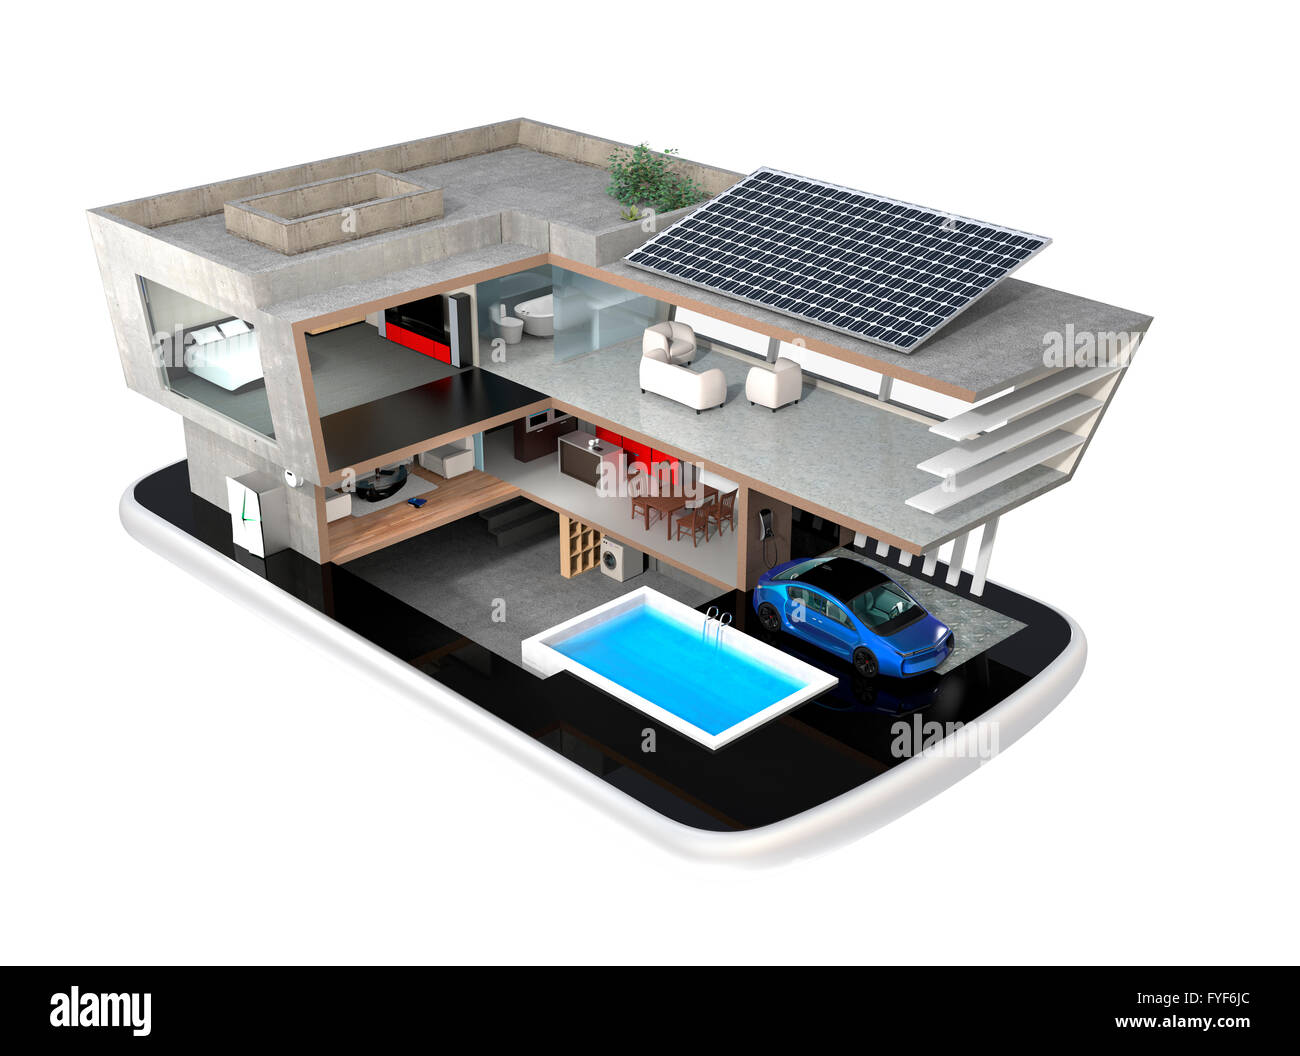 Smart House Phone smart house on a smart phone. the smart house equippd with solar